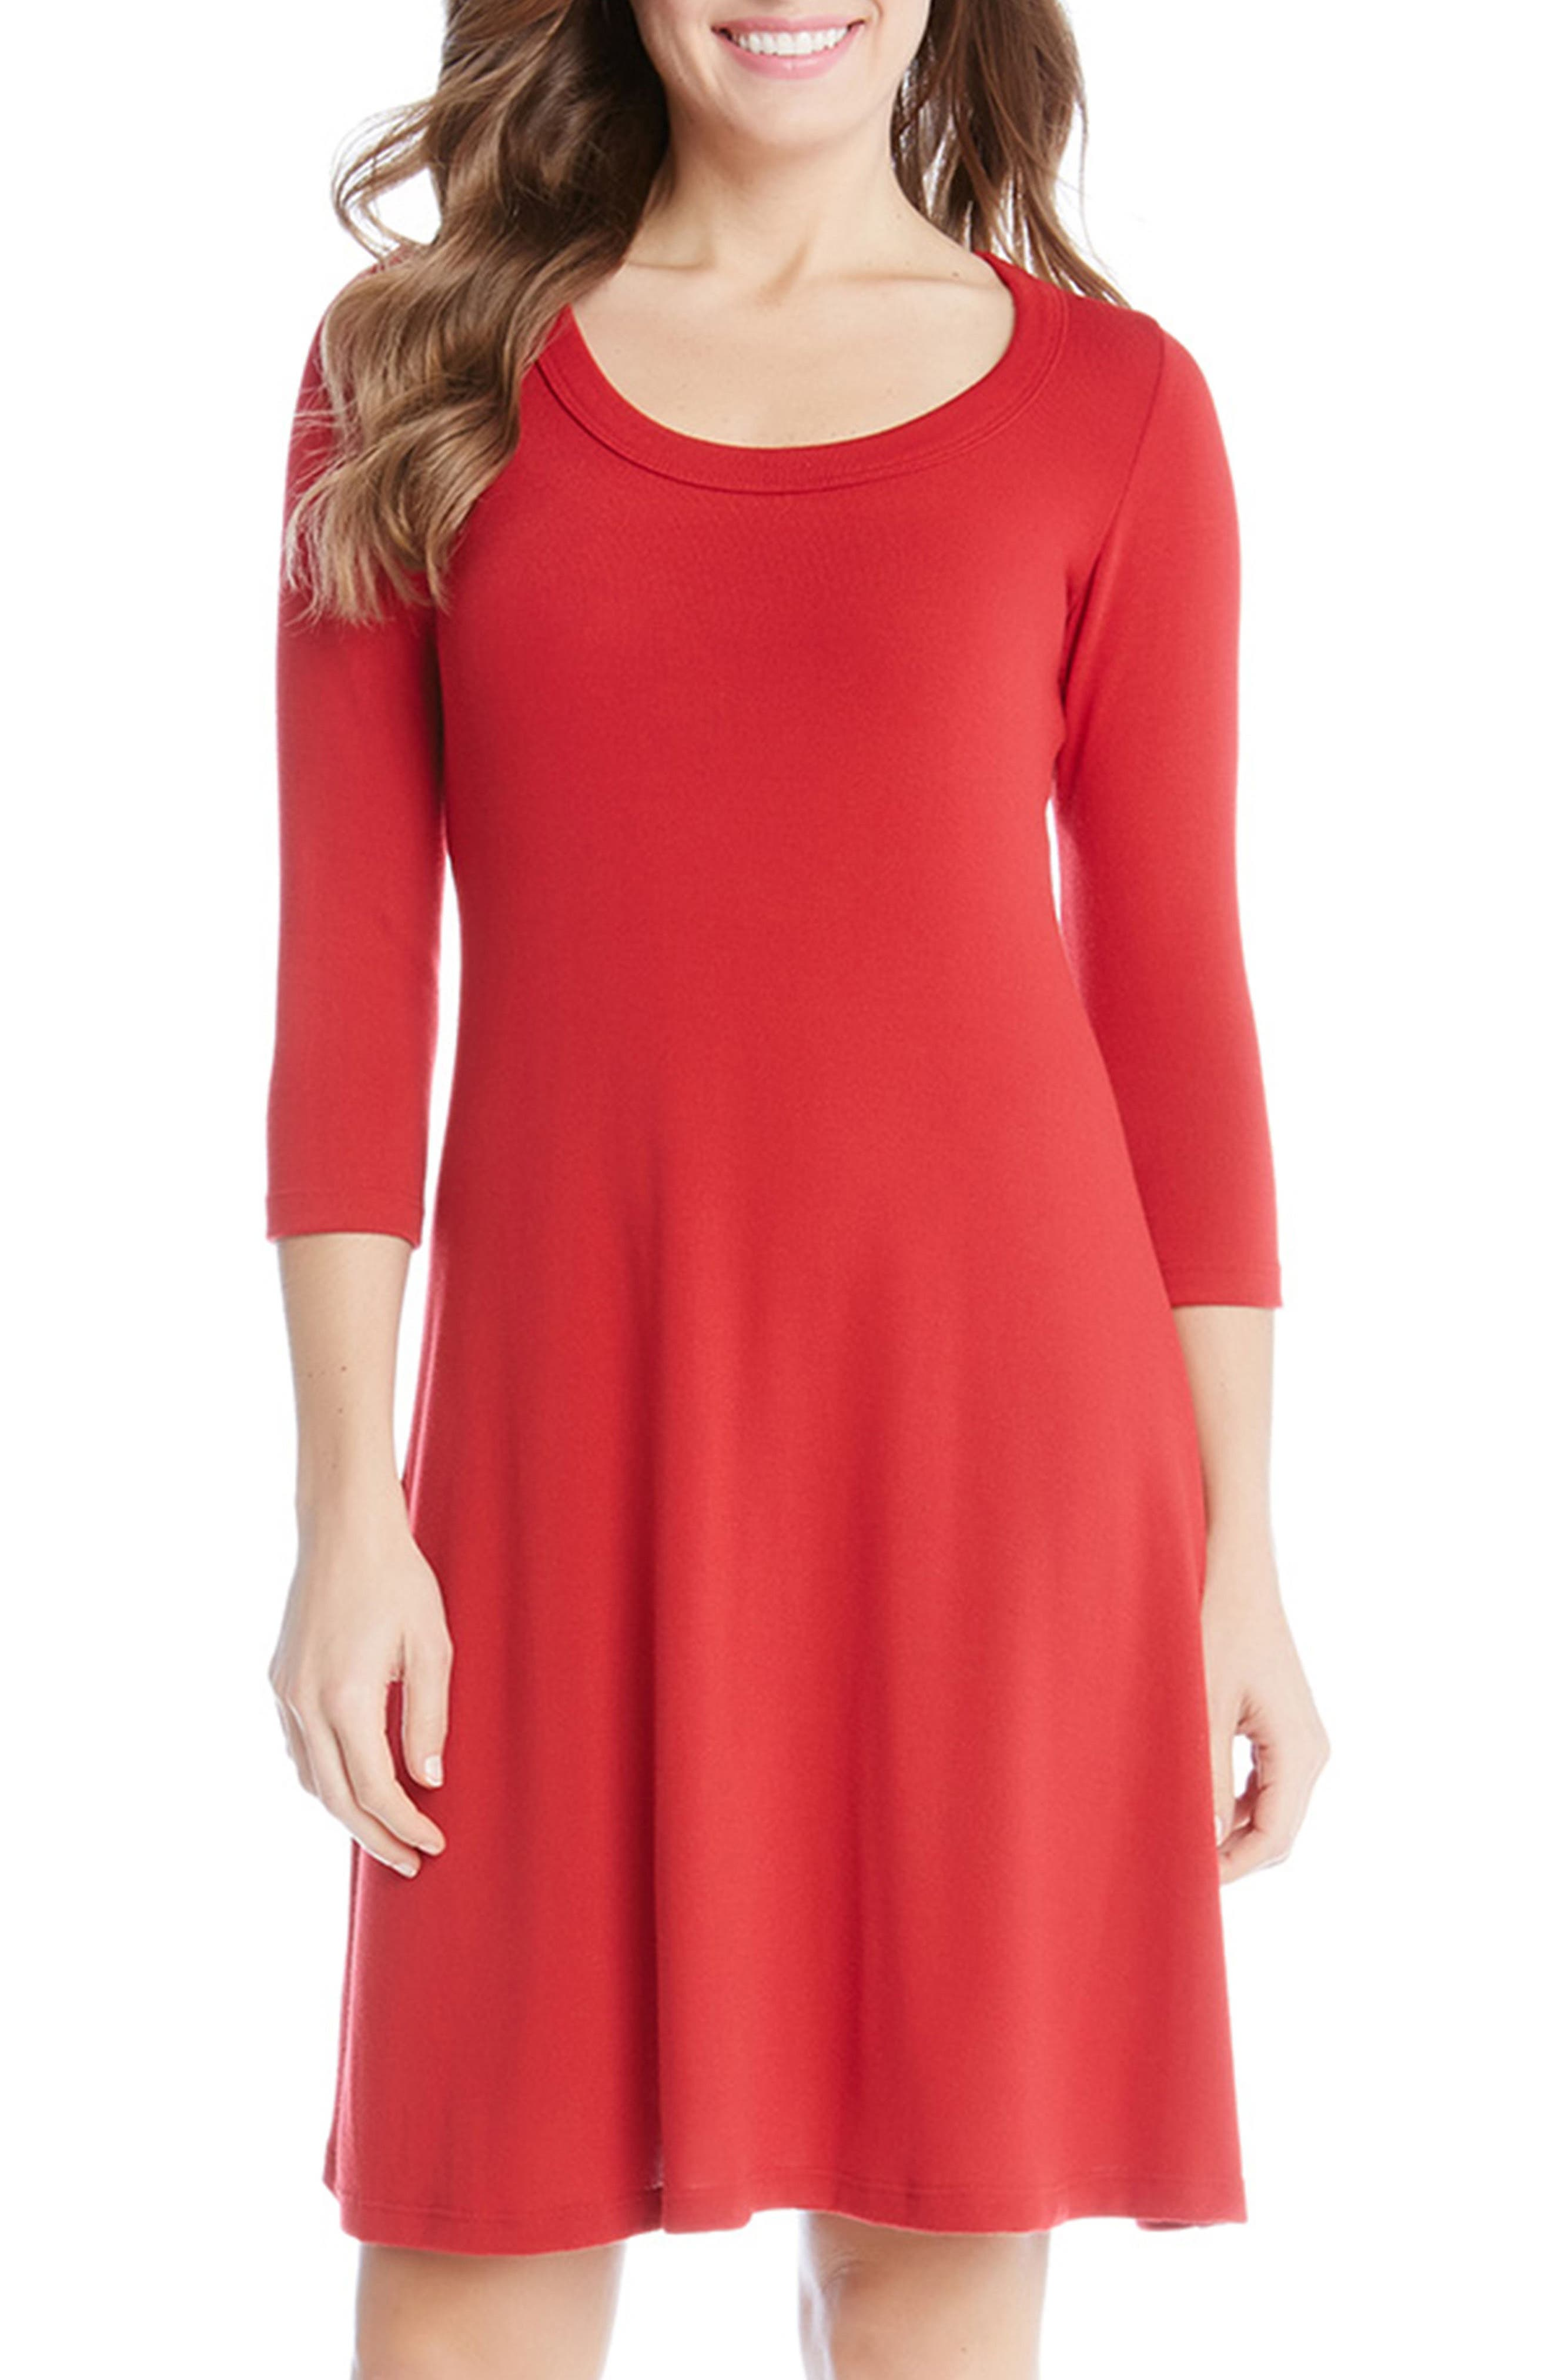 A-Line Sweater Dress,                         Main,                         color, Red